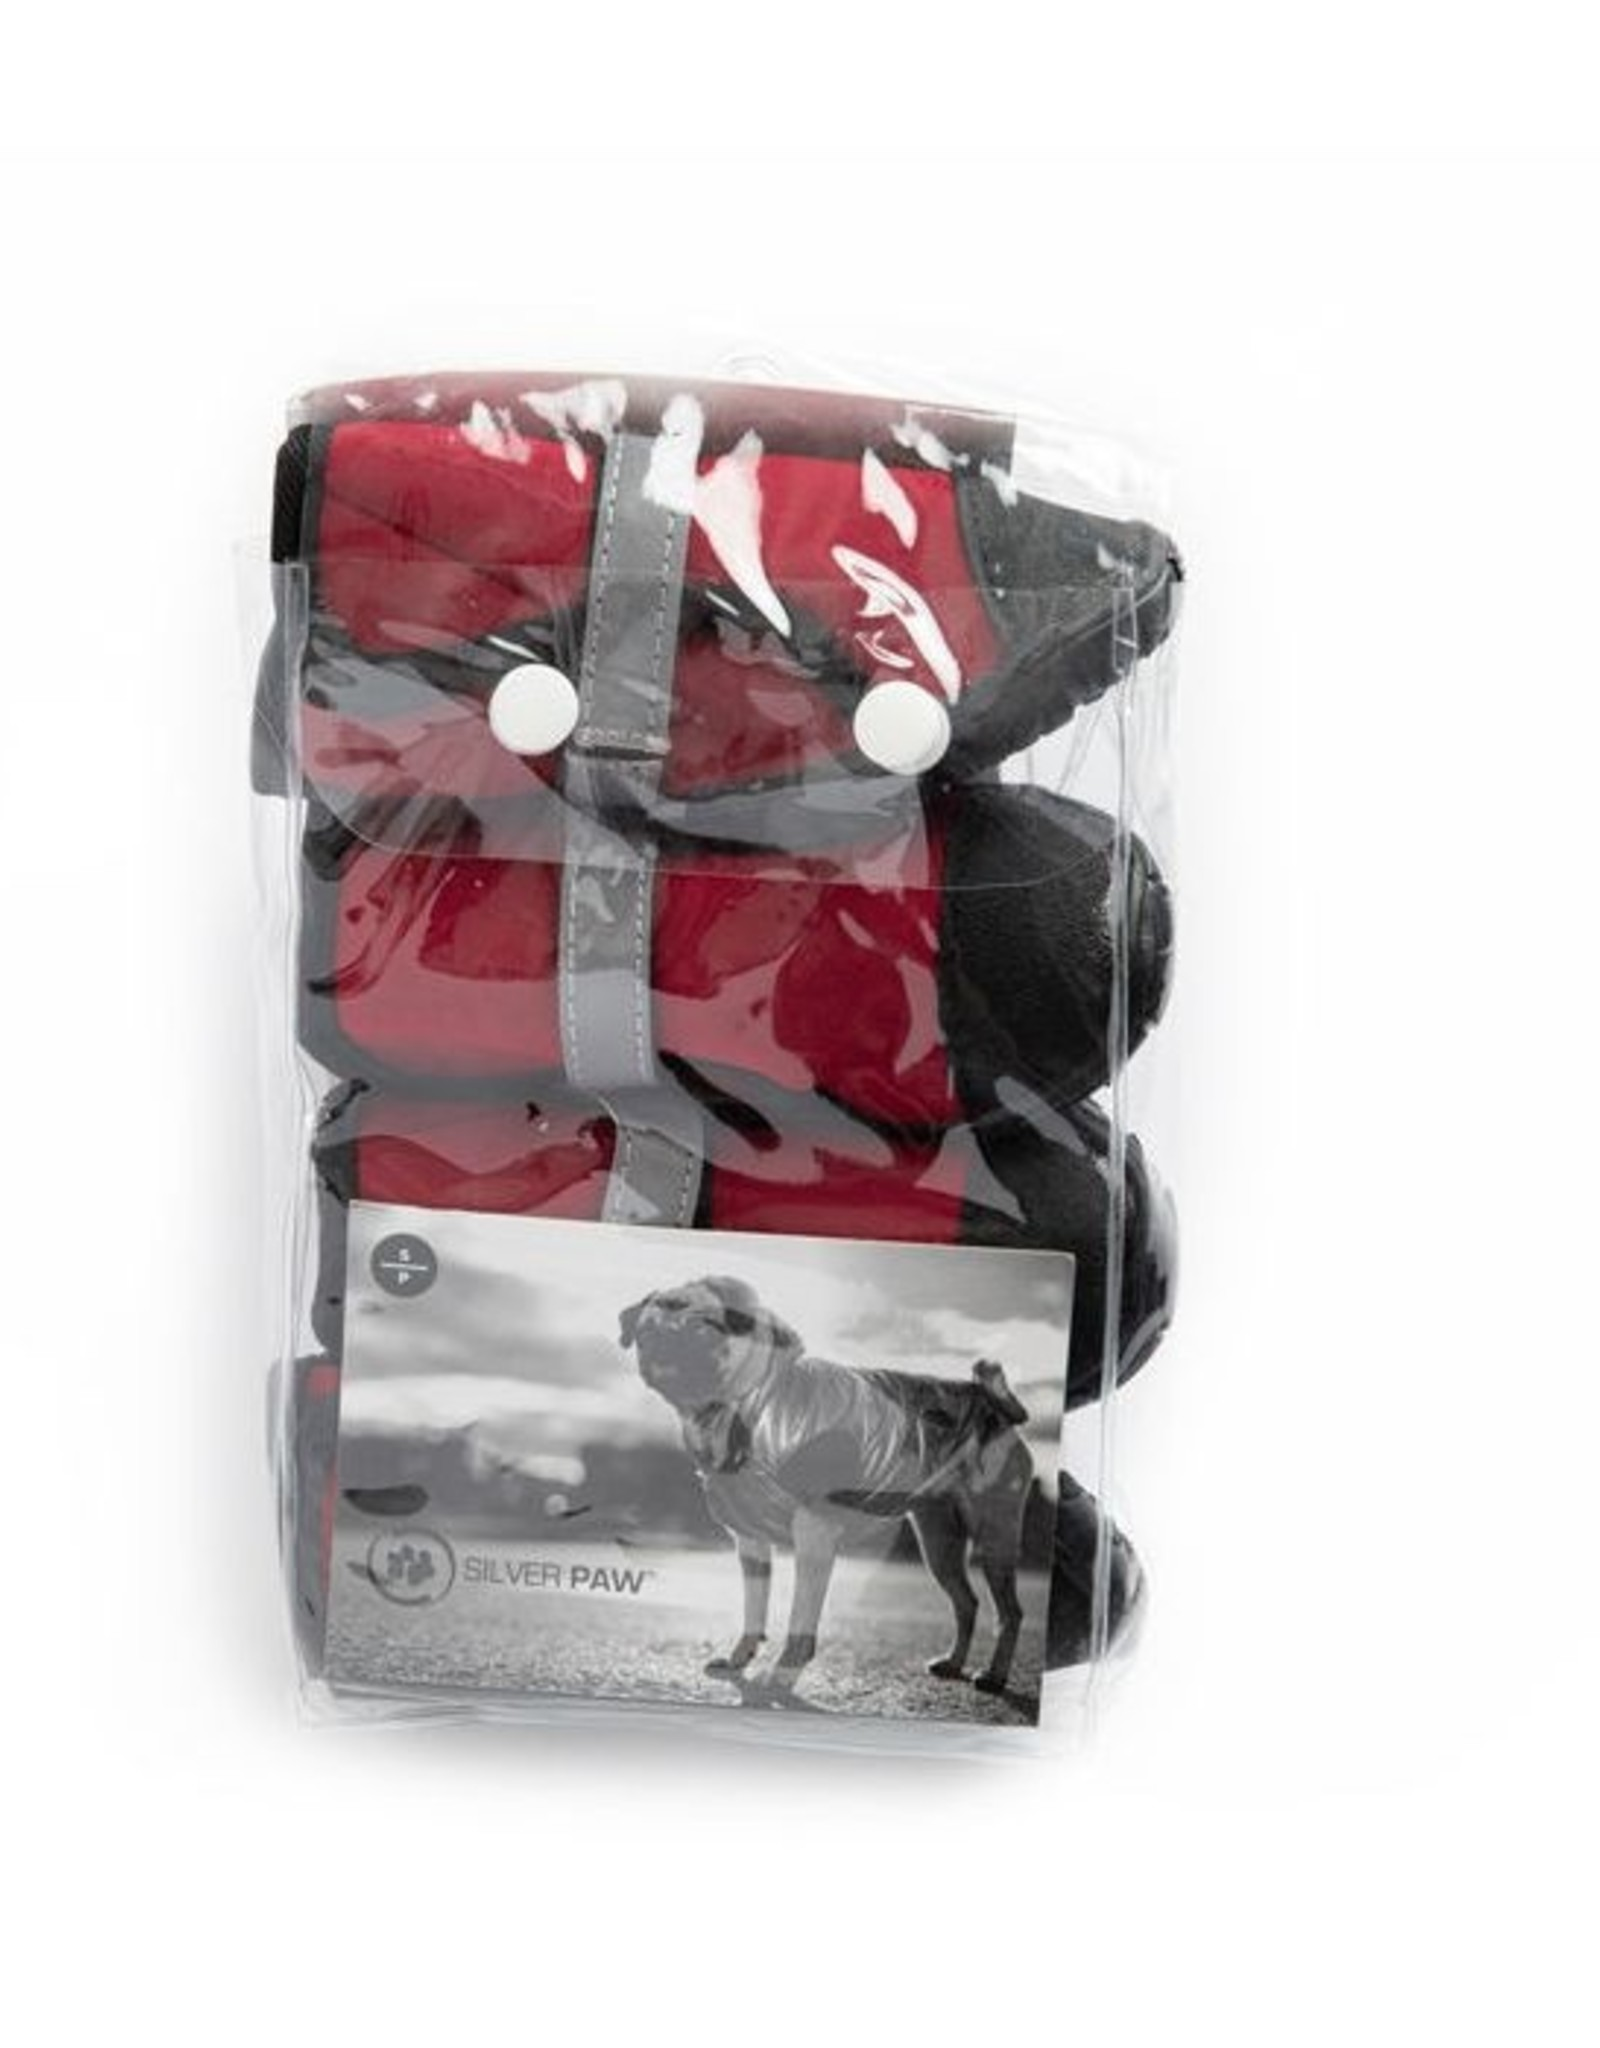 Silver Paw Silver Paw - Easy Fit Neoprene Dog Boots M (Red)